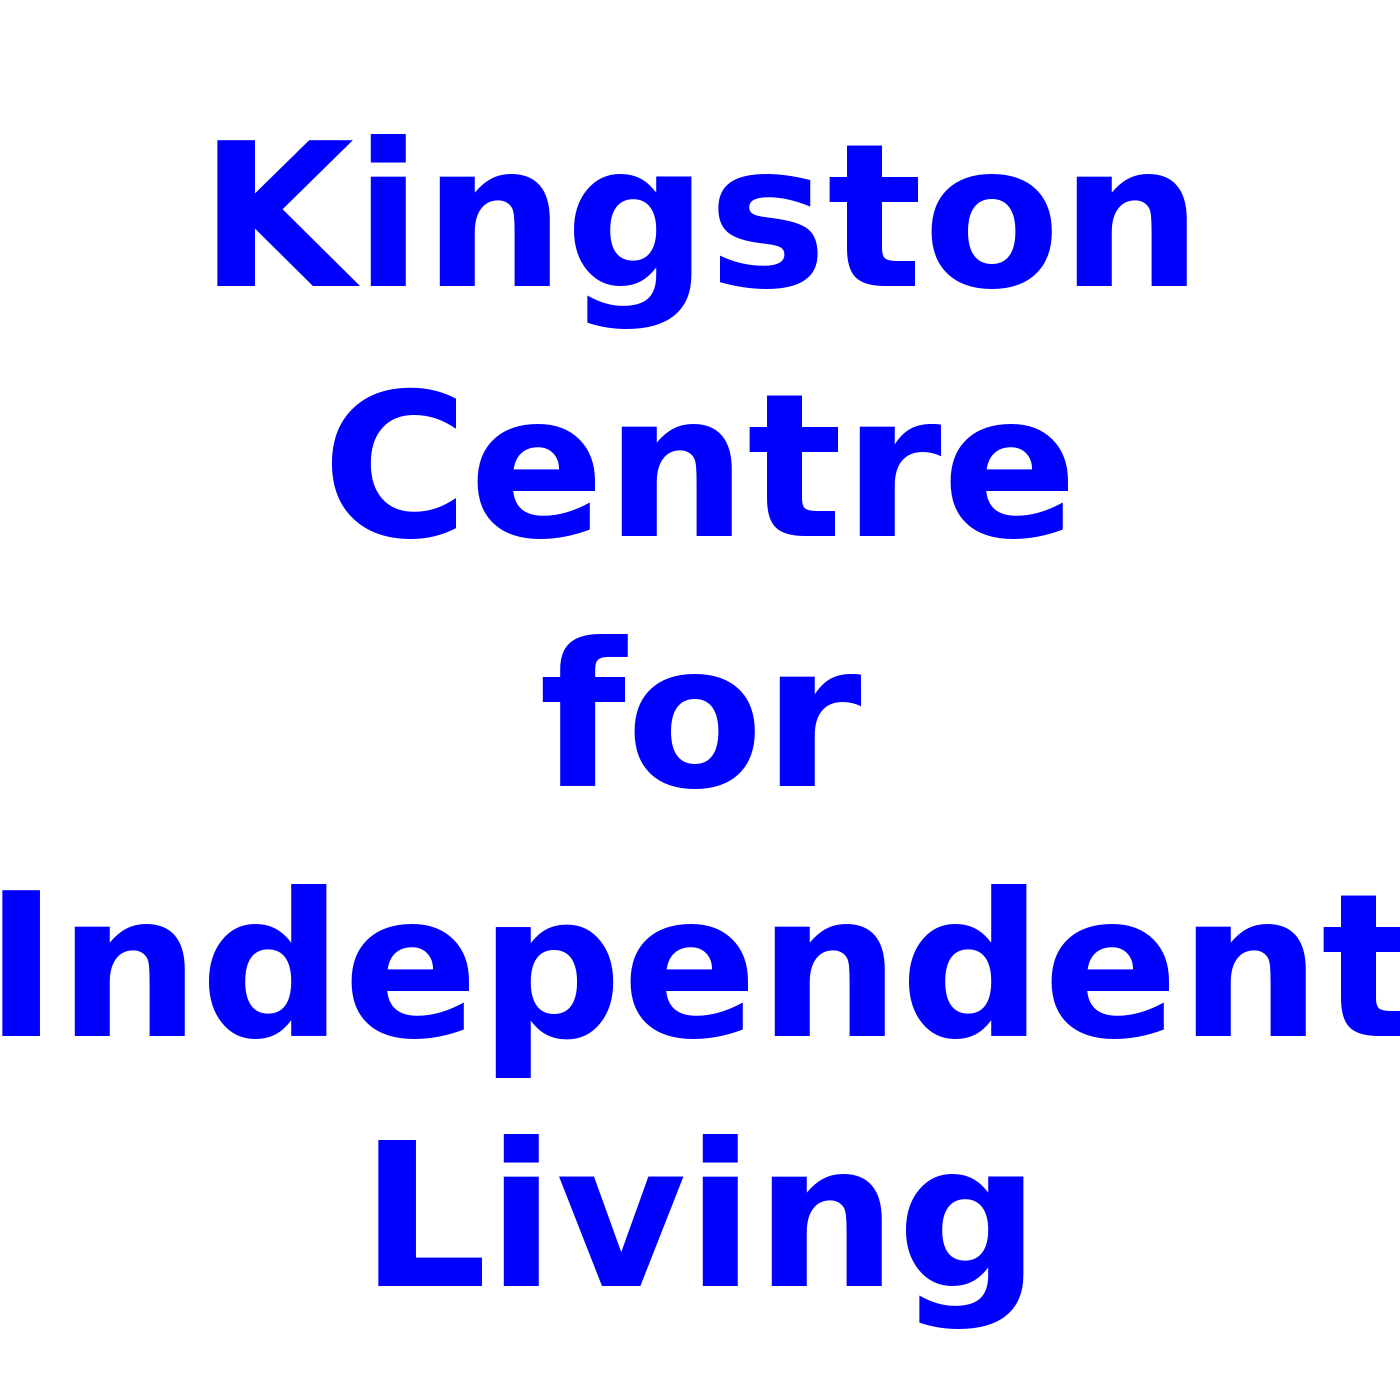 Kingston Centre for Independent Living from Kingston Upon Thames Talking Newspaper